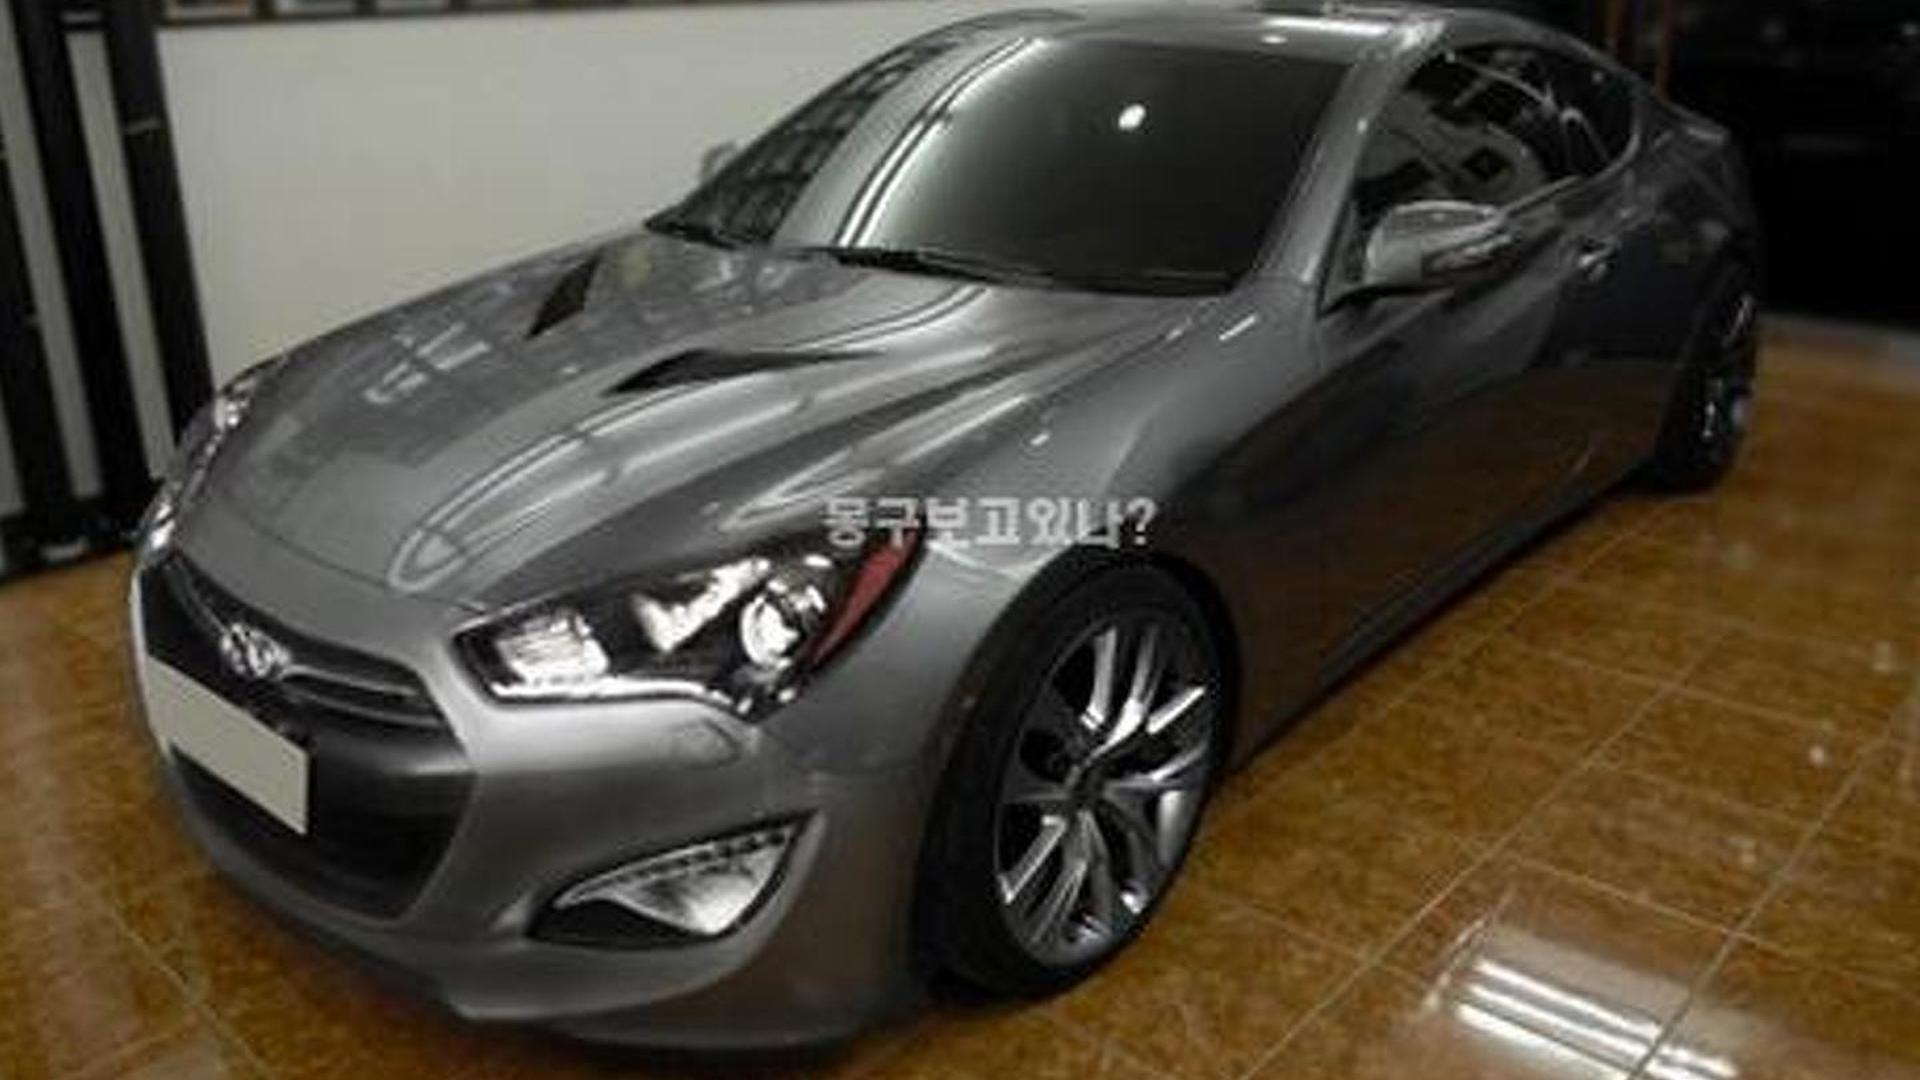 2012 Hyundai Genesis Coupe leaked for a second time on 2012 hyundai tucson, 2012 hyundai veloster, 2012 kia cerato coupe, 2012 audi rs coupe, 2012 hyundai accord, 2012 hyundai sonata, 2012 jaguar f-type coupe, 2012 volkswagen gti coupe, 2012 ford five hundred coupe, 2012 mercedes sls amg coupe, 2012 hyundai versa, 2004 hyundai tiburon coupe, 2012 hyundai scoupe, 2012 hyundai sportage, 2012 bmw 7 series coupe, 2012 hyundai altima, 2012 hyundai fit, 2012 honda crz coupe, 2012 hyundai elantra, 2012 mercedes-benz e-class coupe,